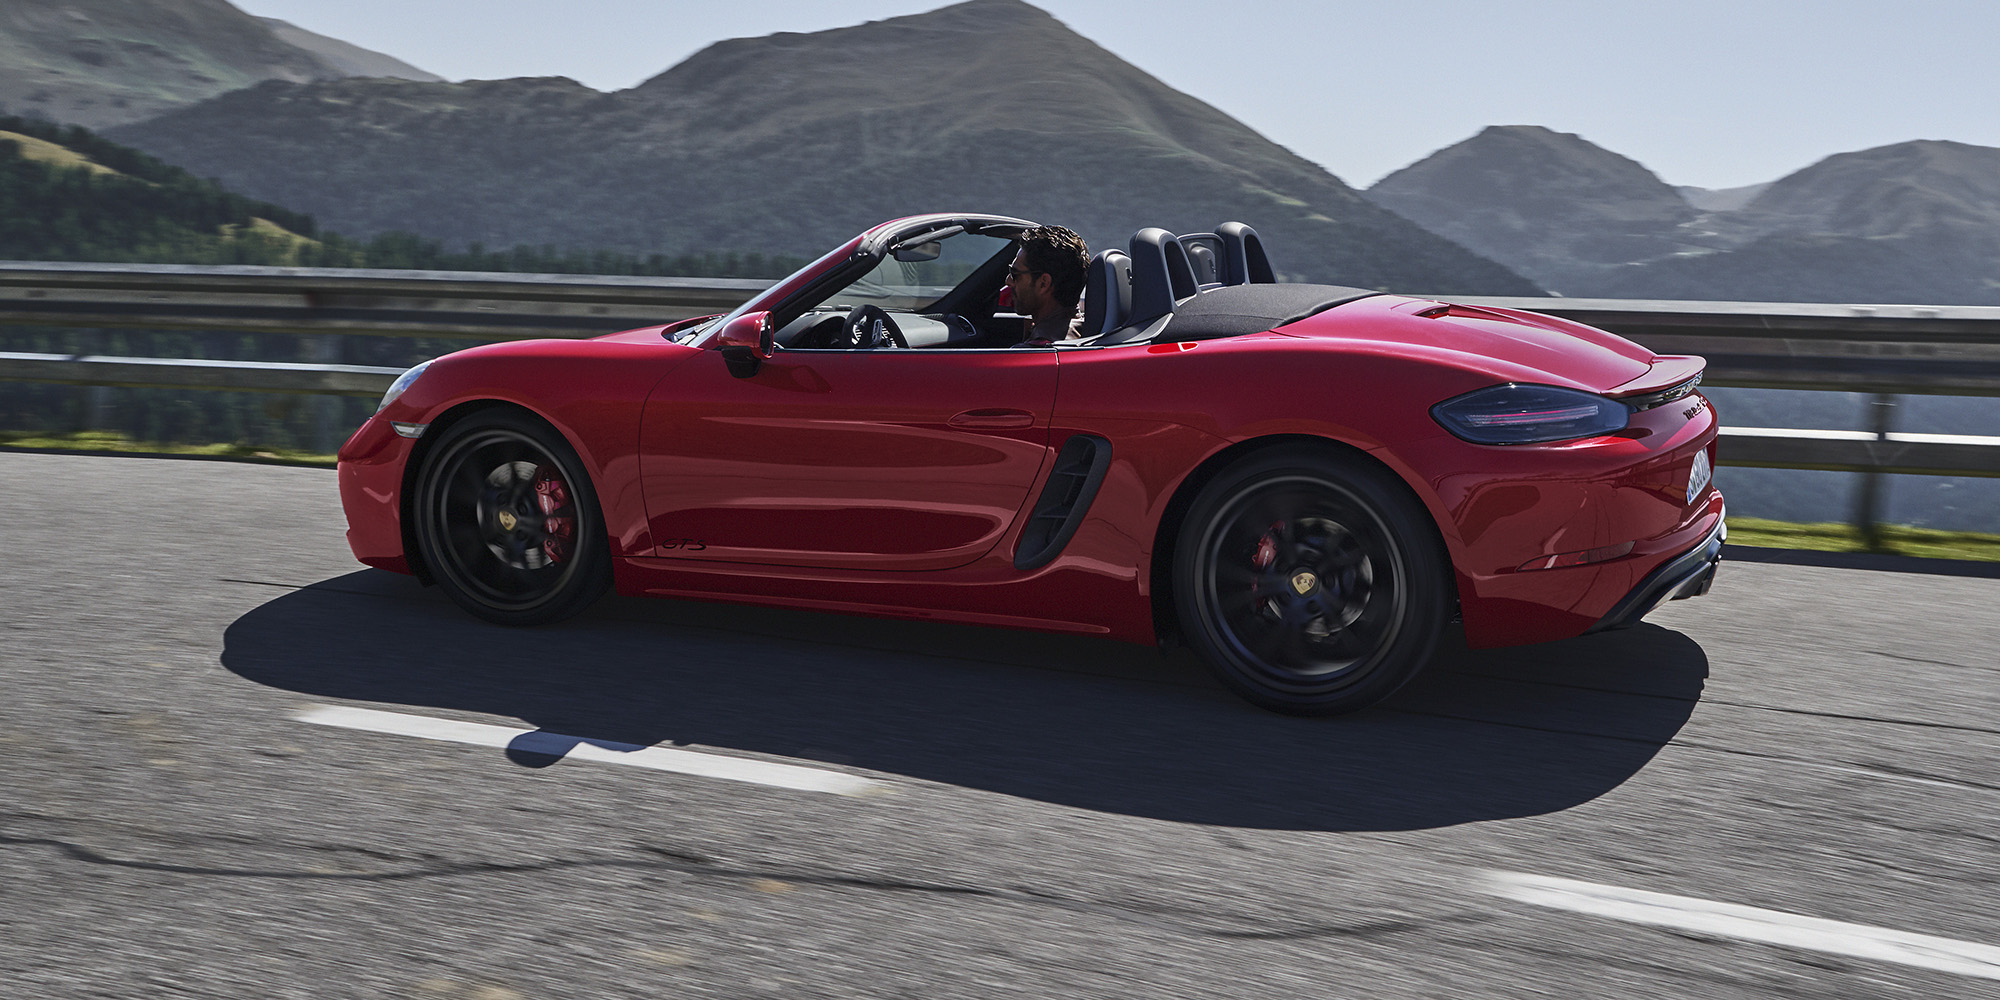 2018 Porsche 718 GTS Pricing And Specs